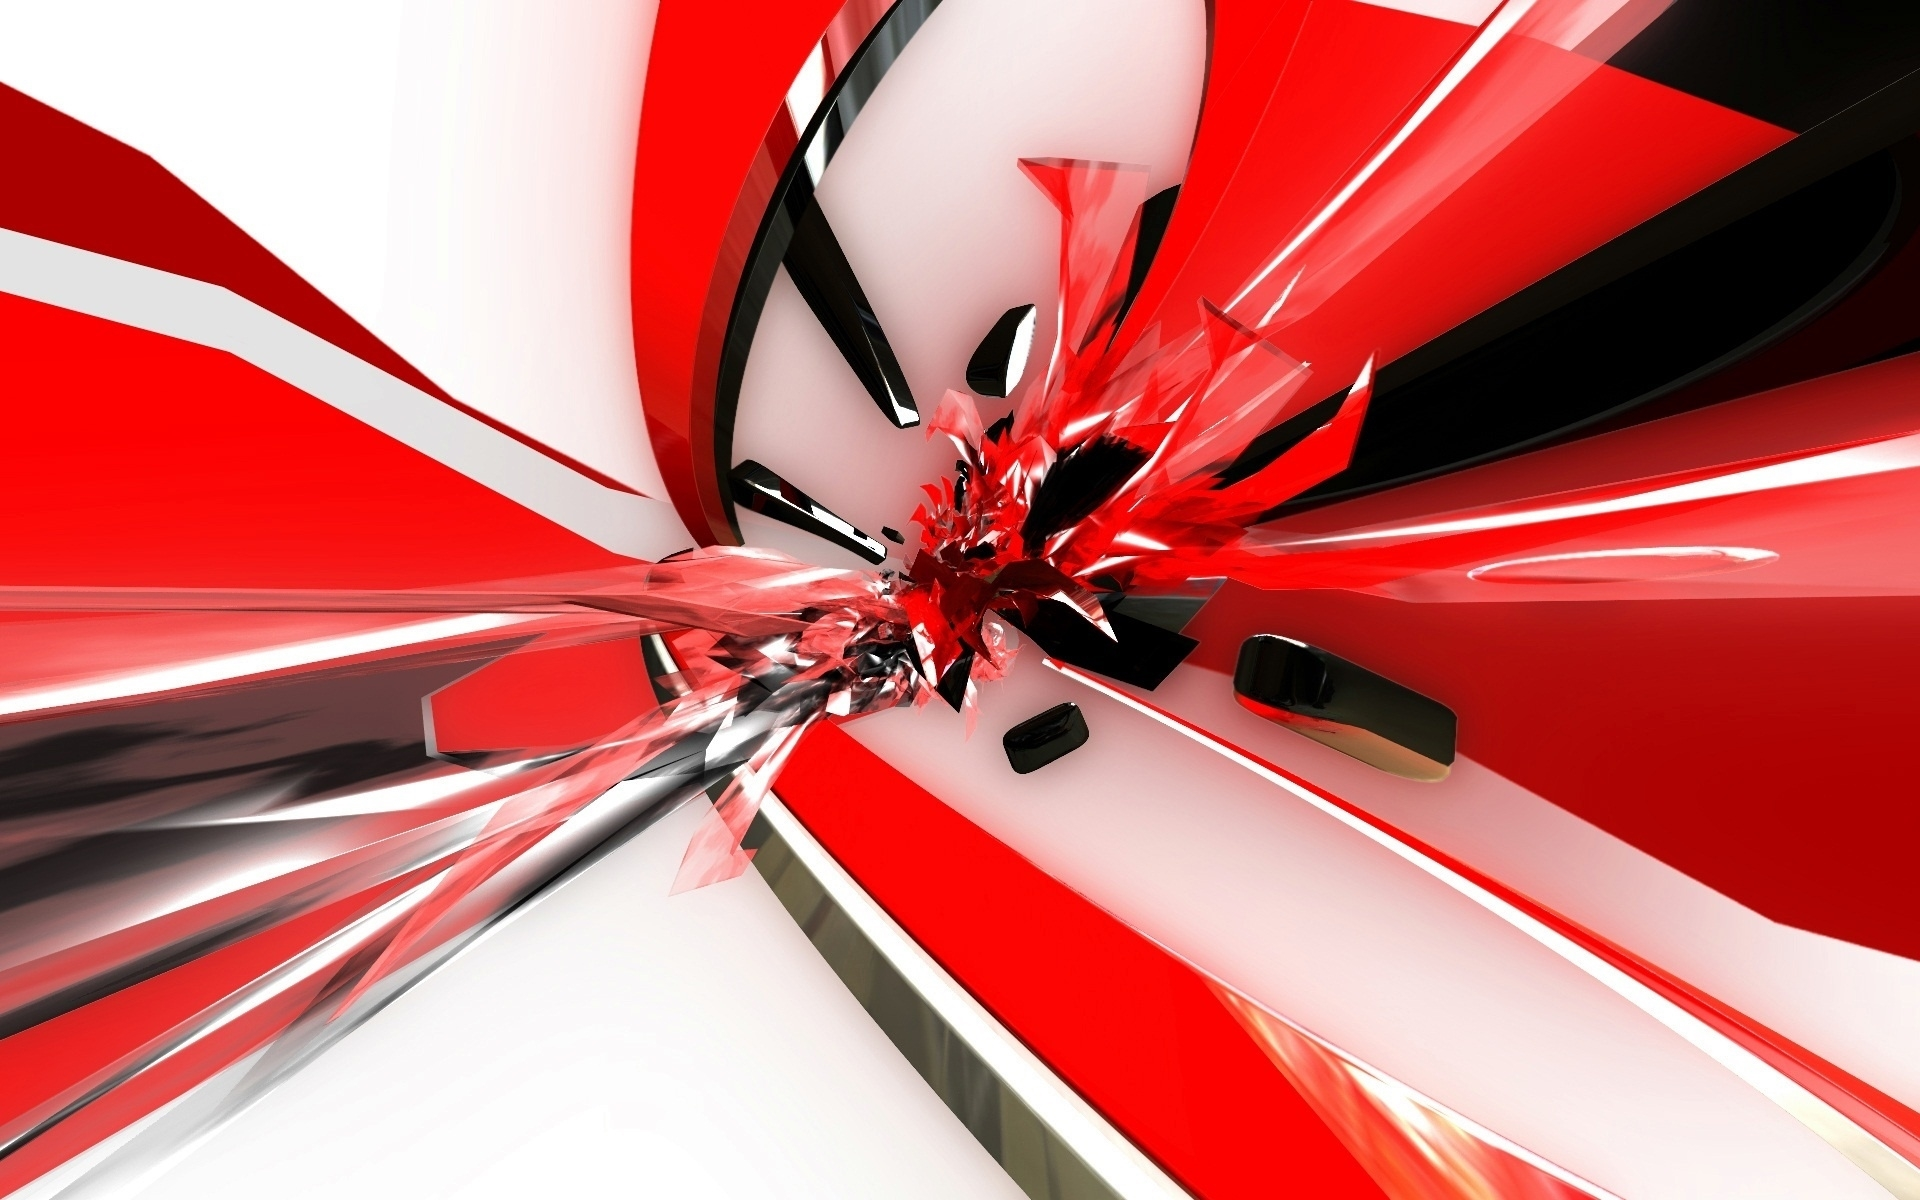 3d And Abstract Wallpapers Hd Desktop Backgrounds Page 23